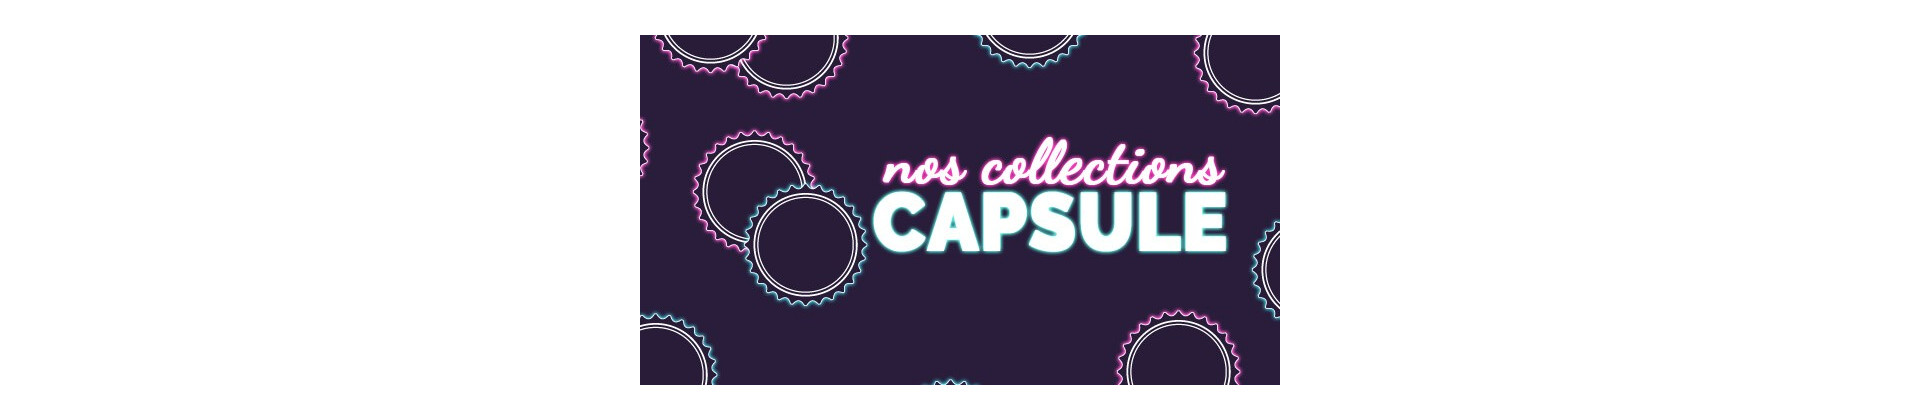 Collections Capsule